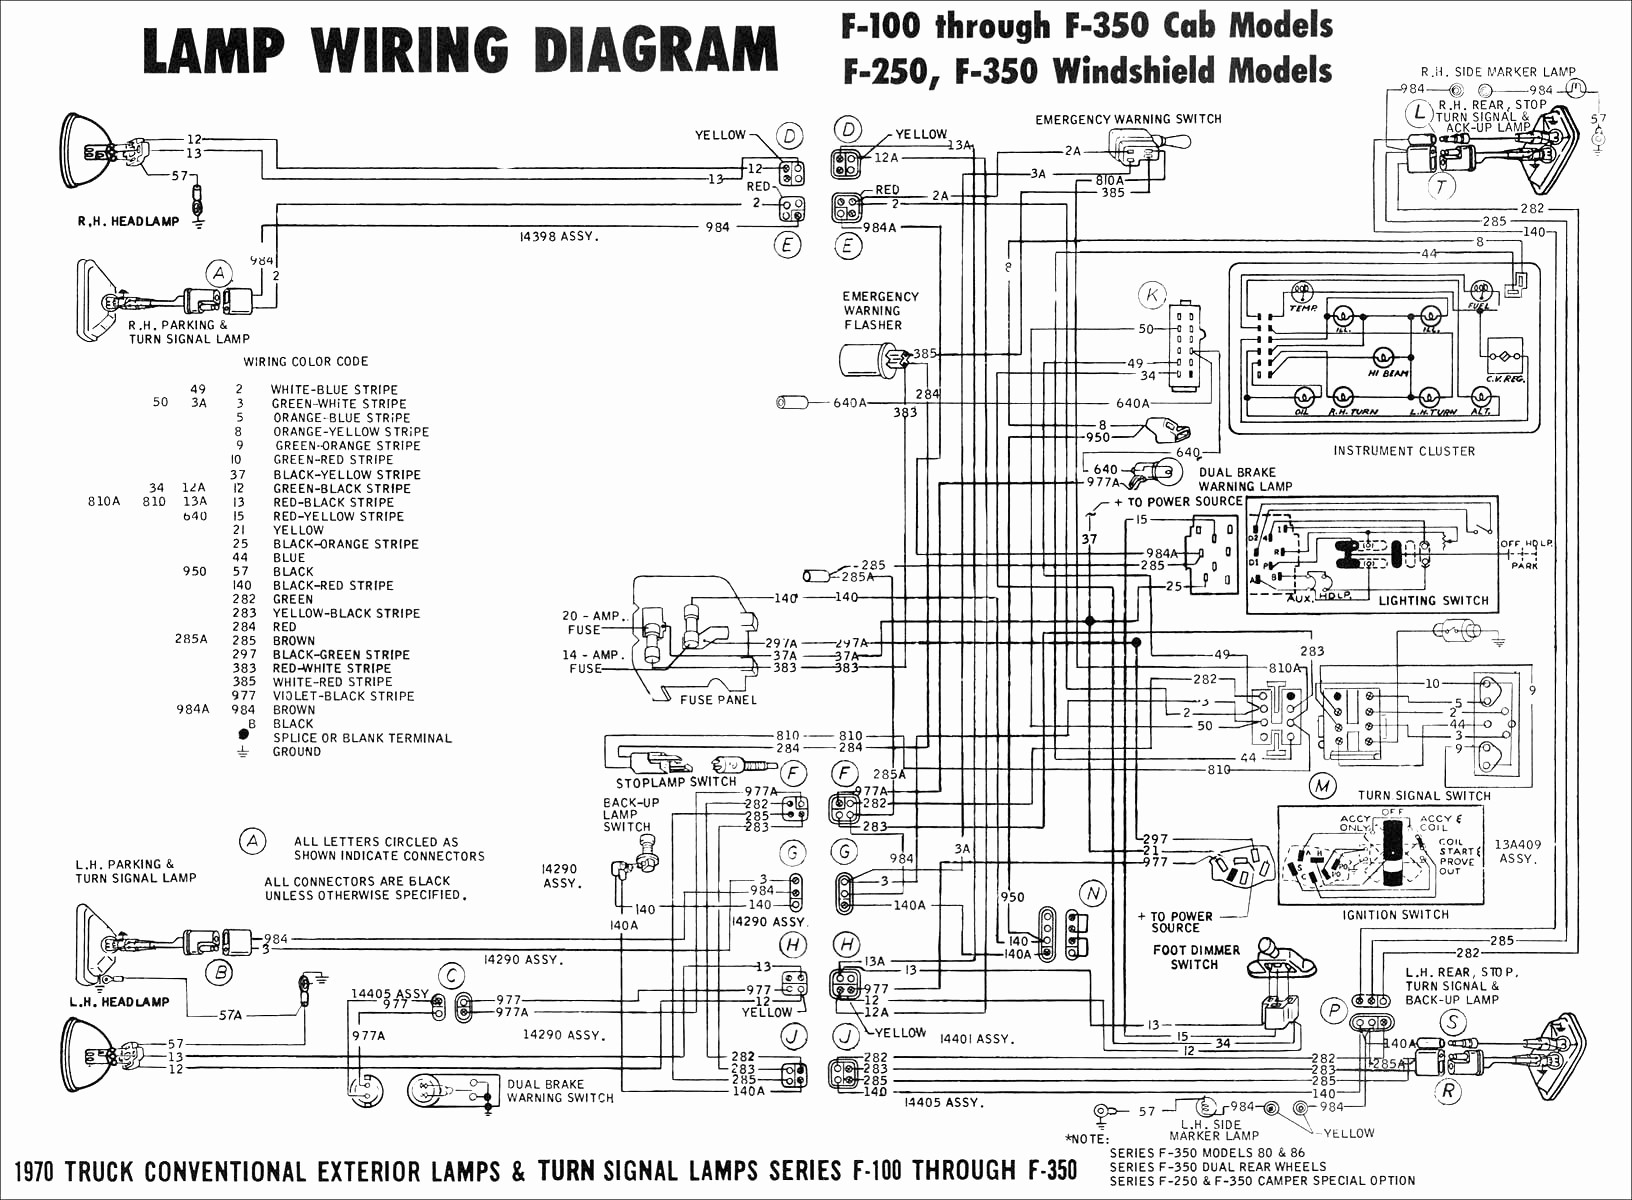 true tuc 27f wiring diagram Download-True Tuc 27f Wiring Diagram New Wiring Diagram True Freezer T 49f Wiring Diagram New Free Wiring 14-q